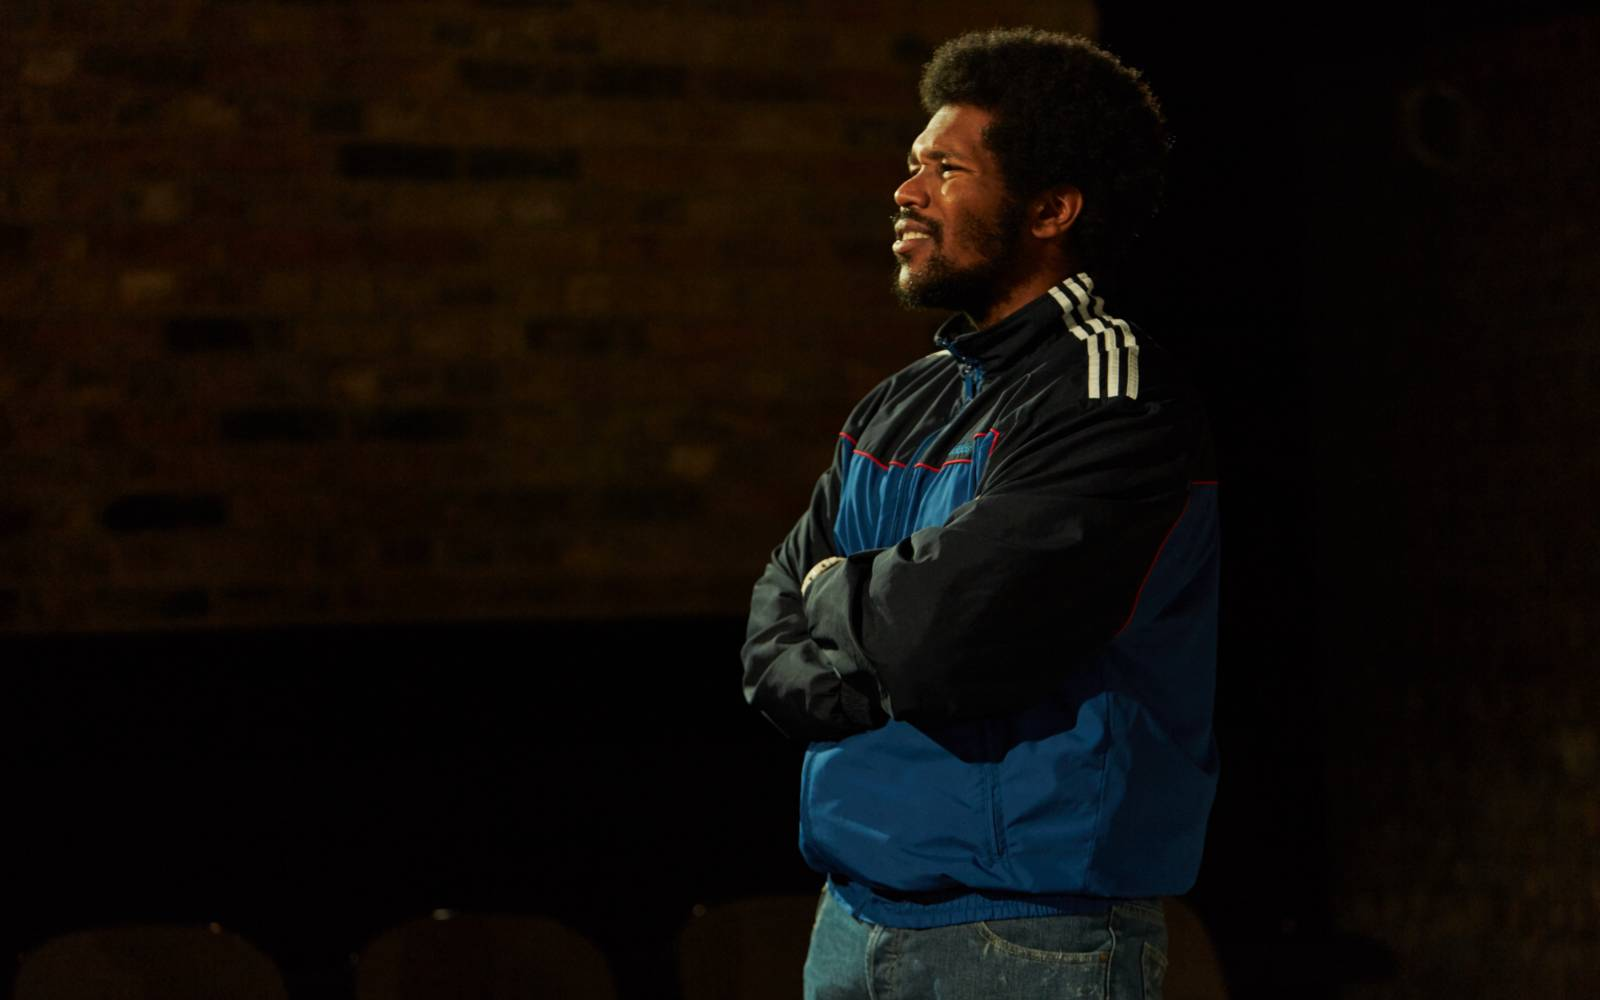 Side photo of Lladel Bryant. He's looking out to the audience and squinting, his arms crossed. He has short afro hair and a beard. He's wearing dark jeans and a light and dark blue sports jacket with 3 white stripes down the arm.